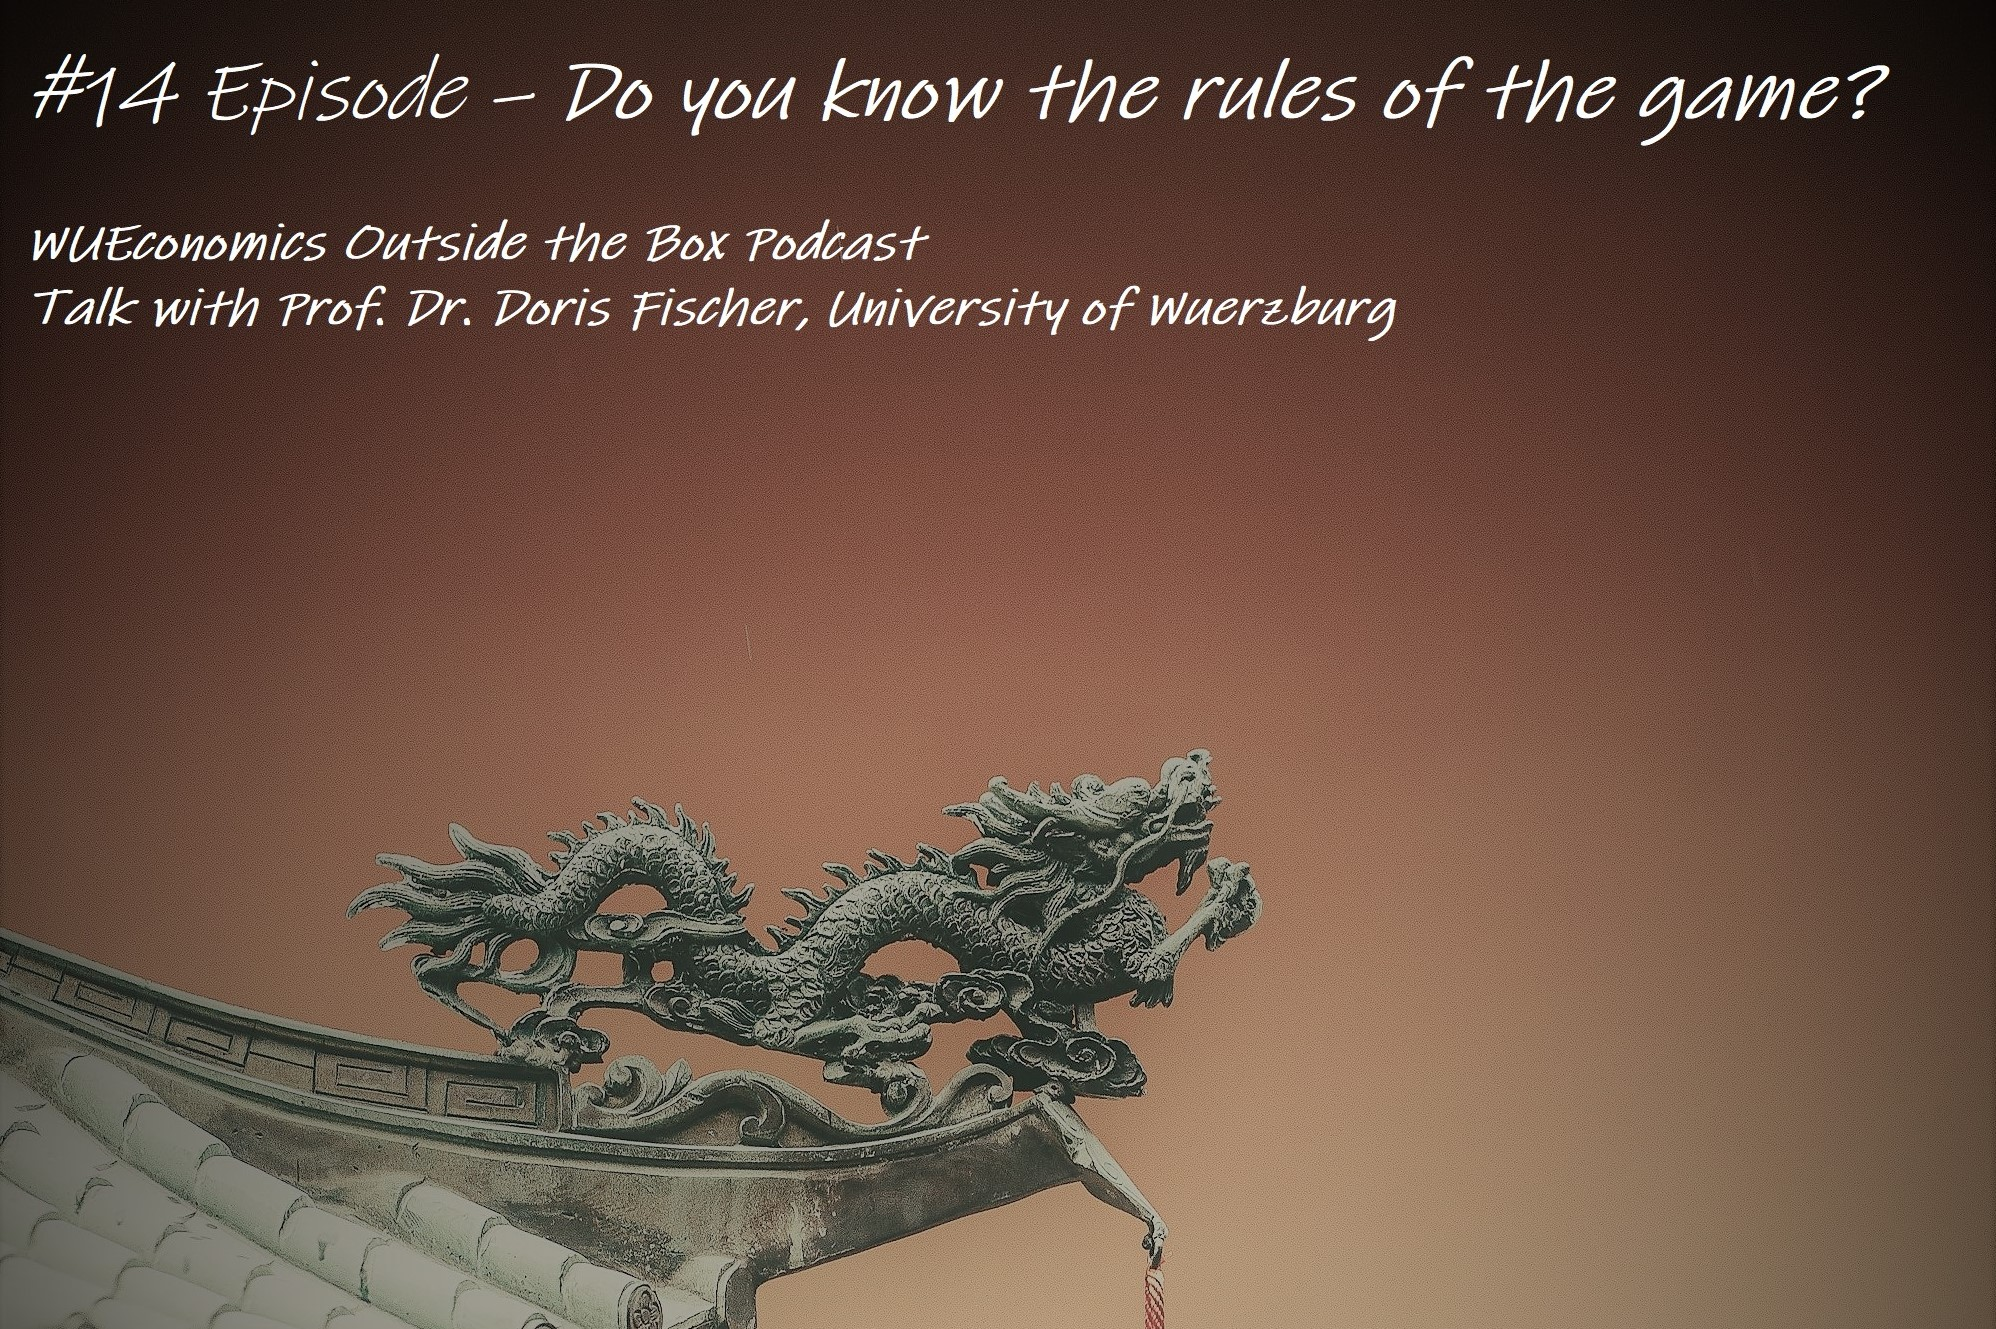 #14 Episode – Do you know the rules of the game?